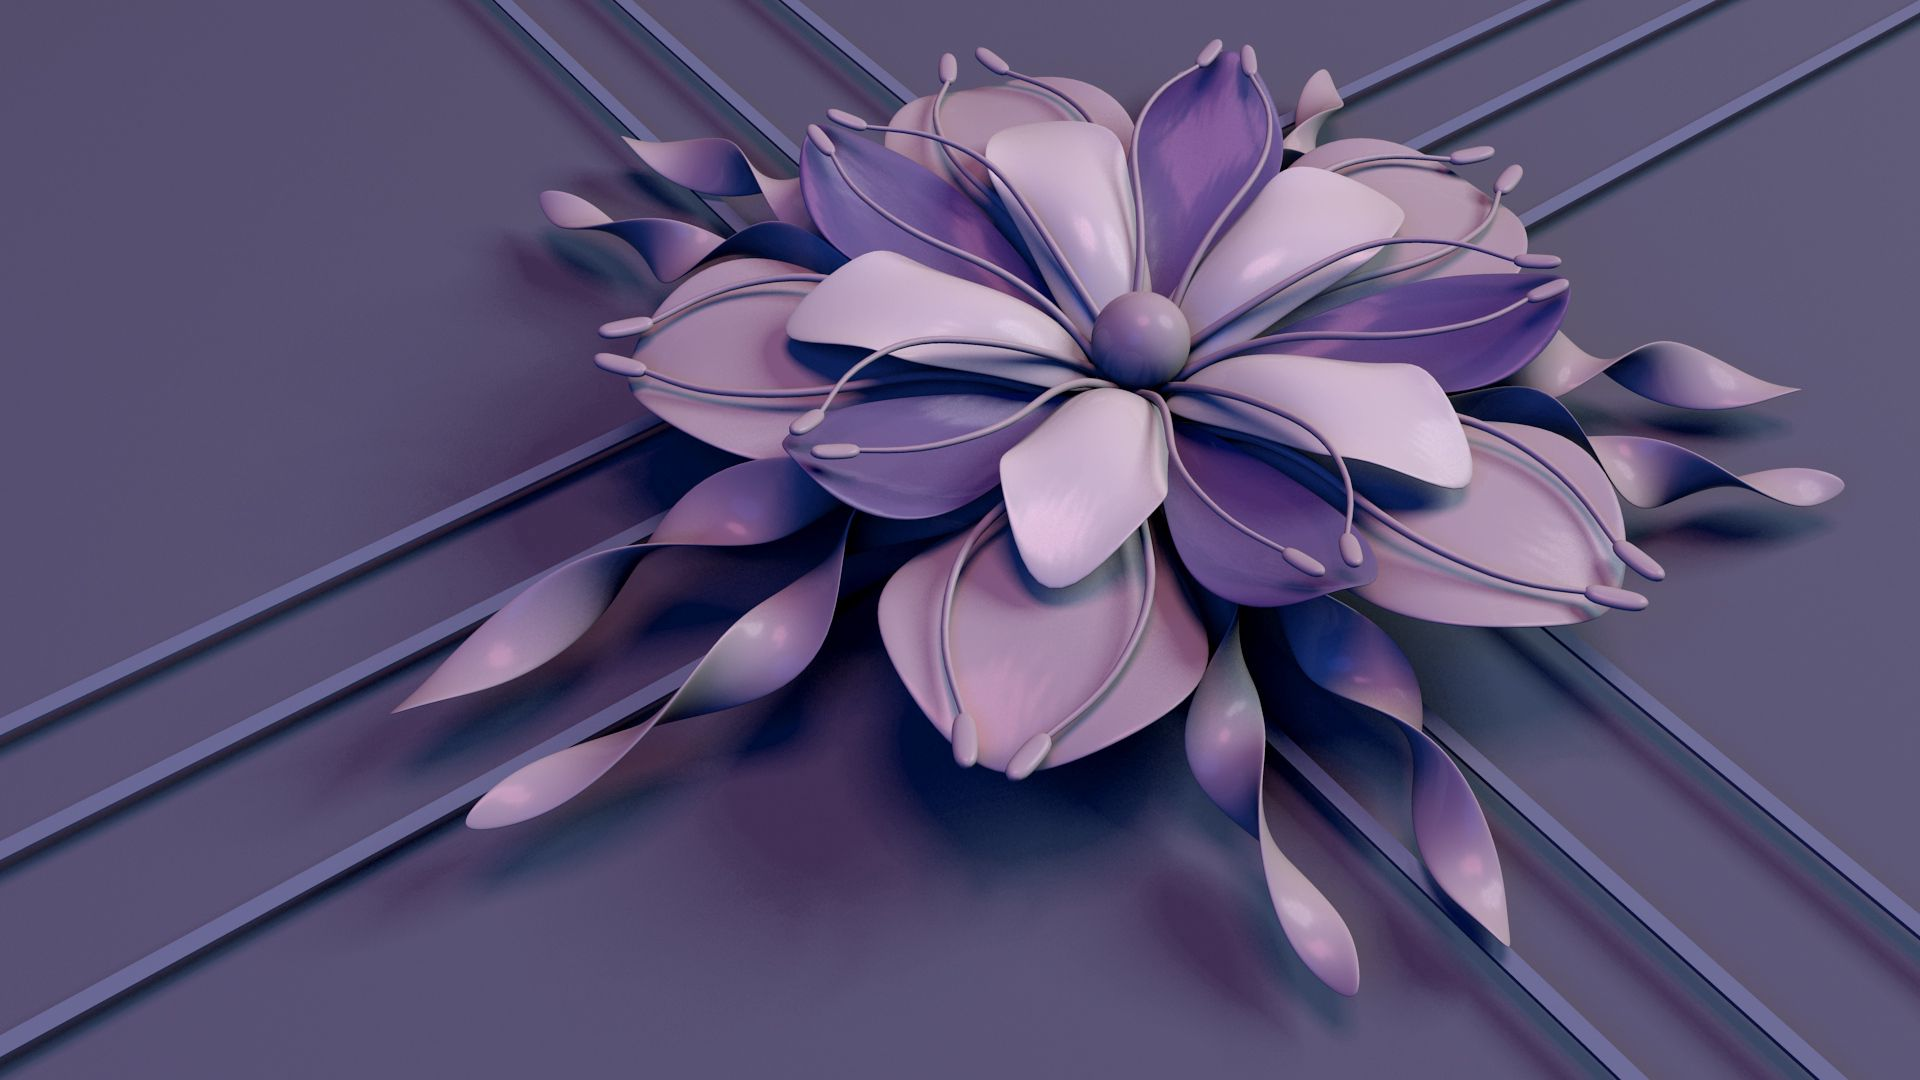 122076 Screensavers and Wallpapers Stripes for phone. Download 3D, Lilac, Flower, Petals, Lines, Stripes, Streaks, Stamens, Rendering pictures for free